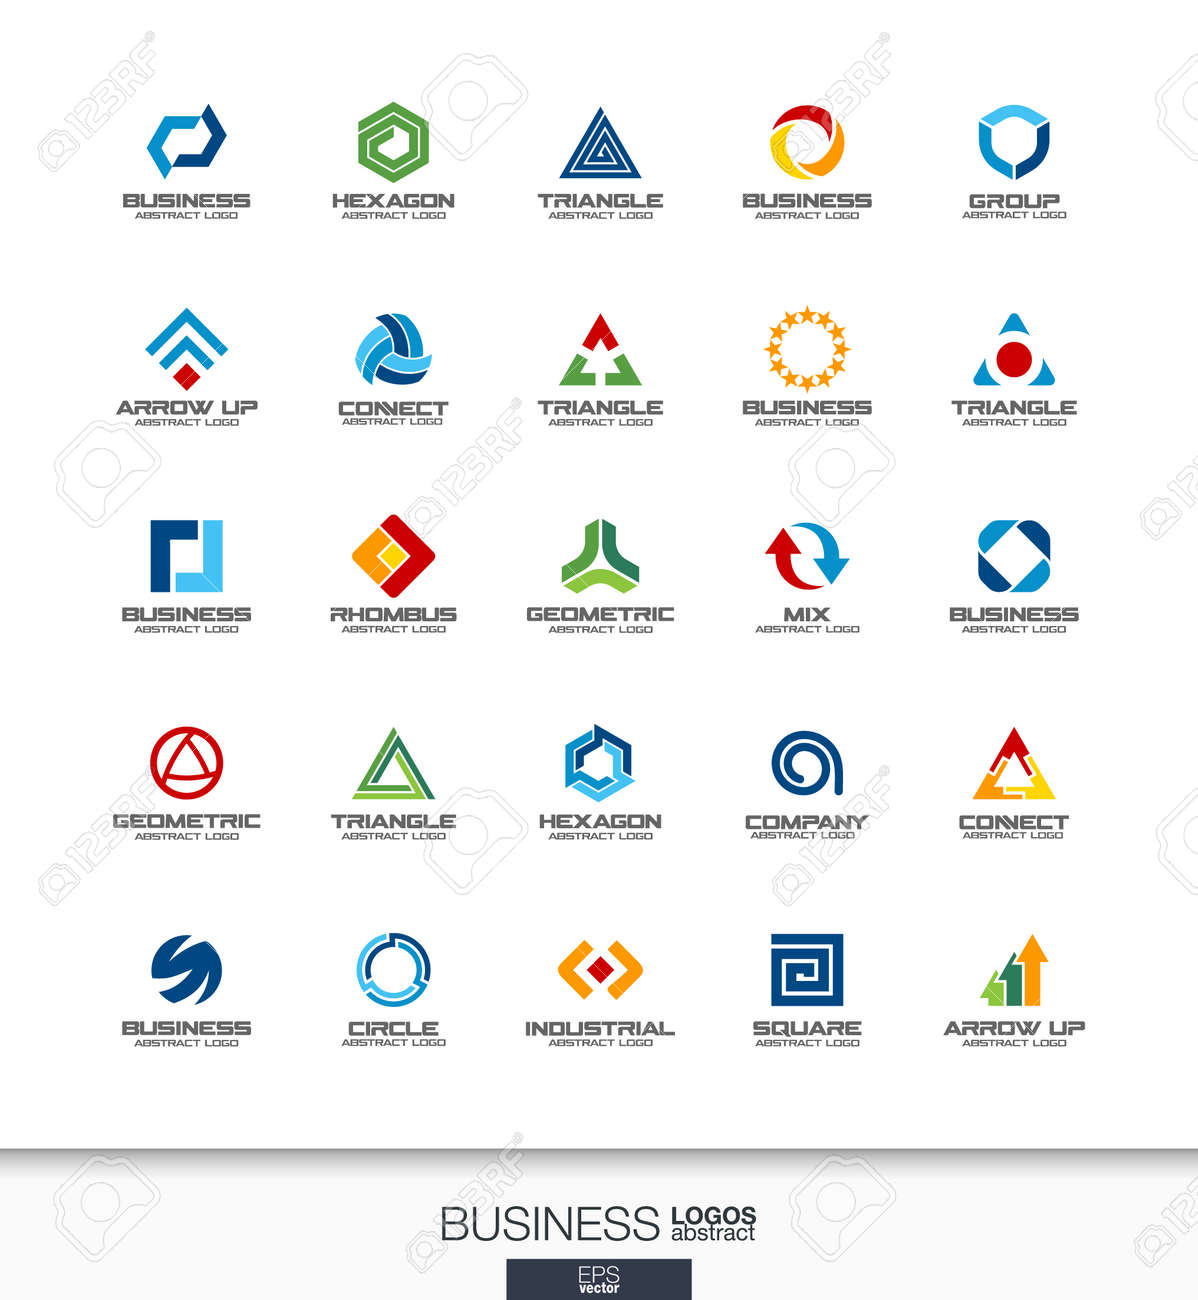 Design Elementen Bank.Abstract Logo Set For Business Company Corporate Identity Design